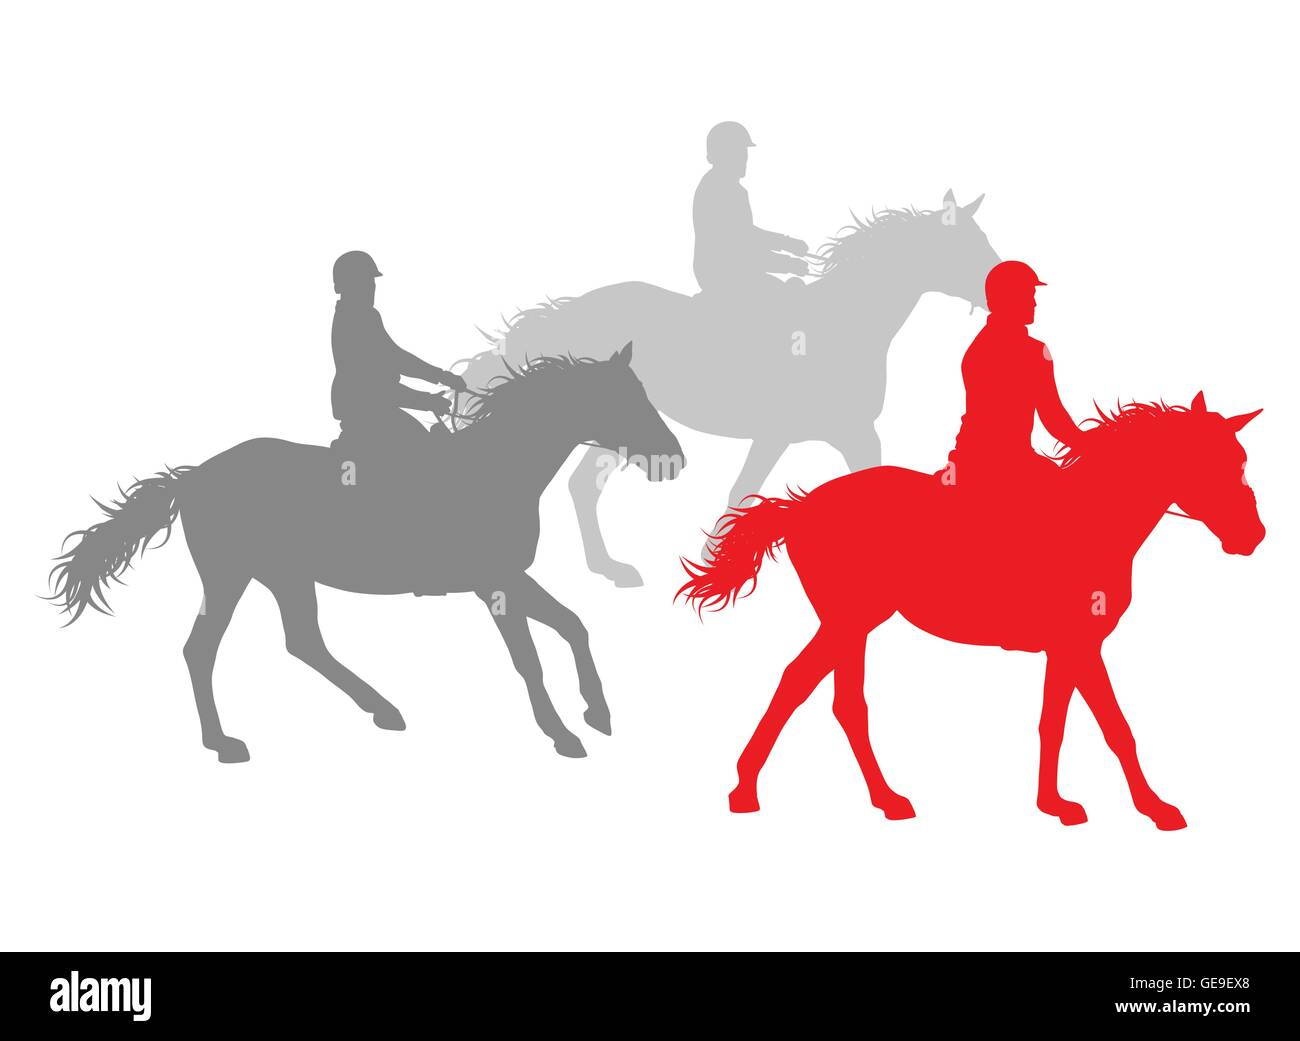 Horse Riding Winner Vector Background Concept Isolated Over White For Stock Vector Image Art Alamy